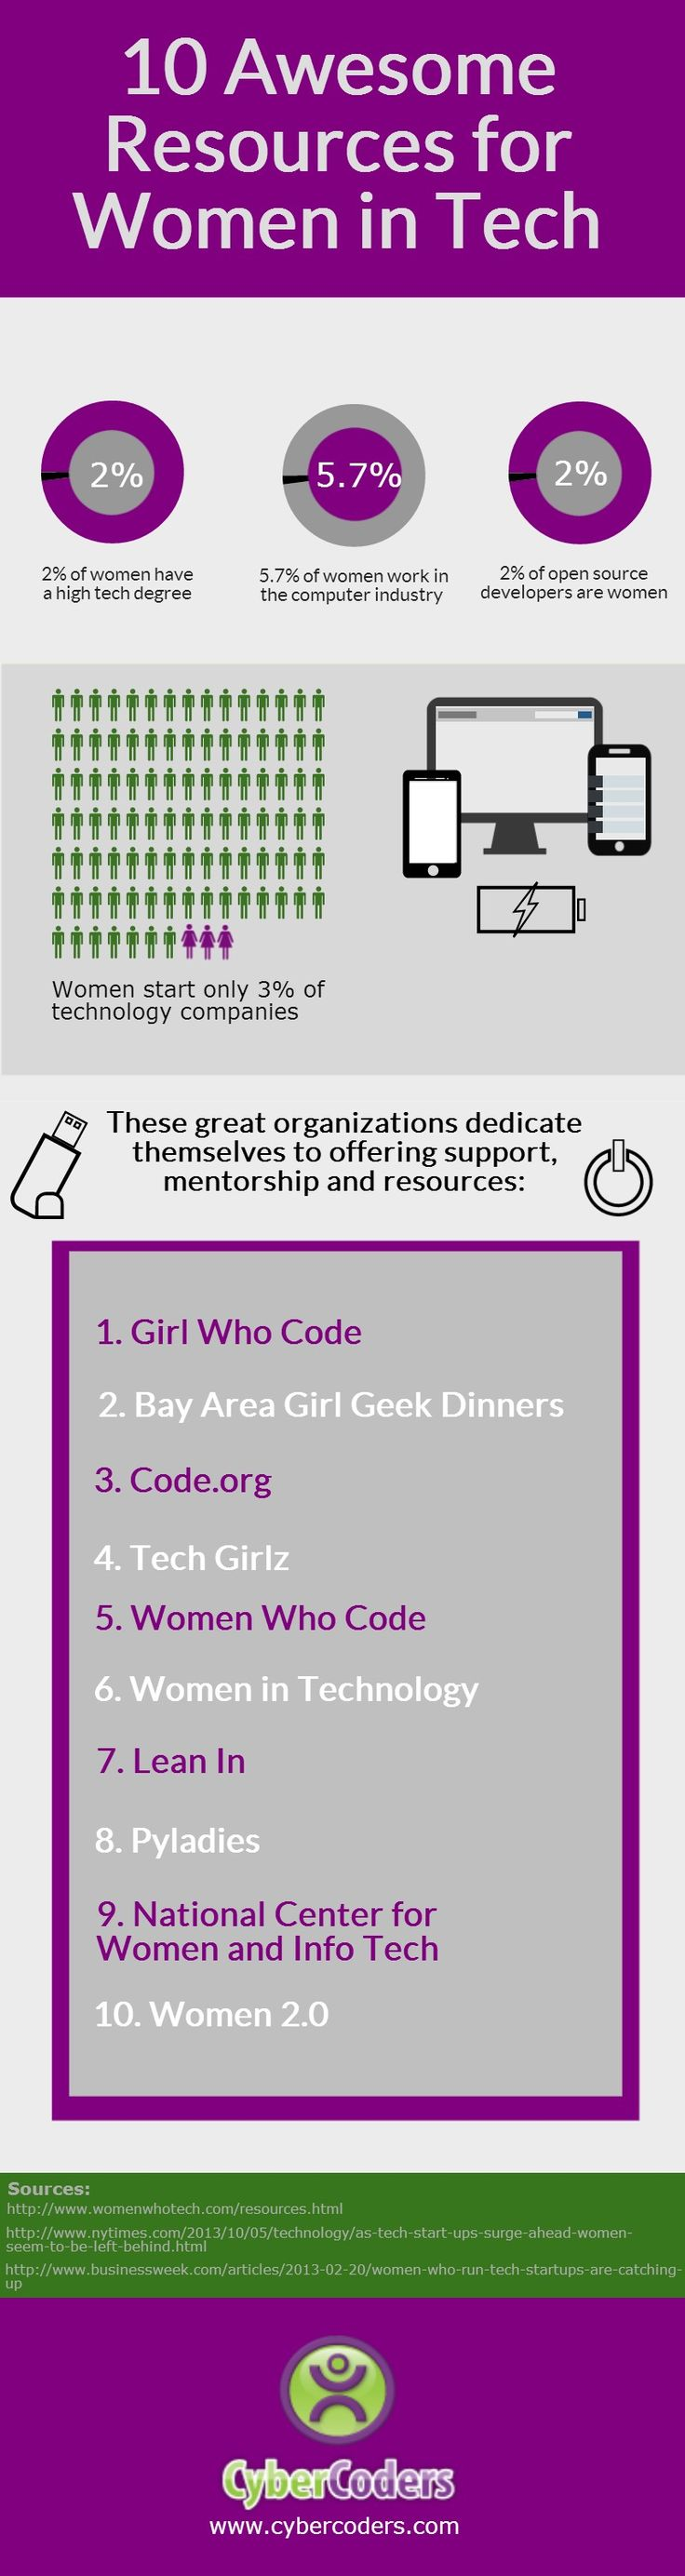 10 resources for women in tech. Not all relevant to us in NZ but some good stuff!